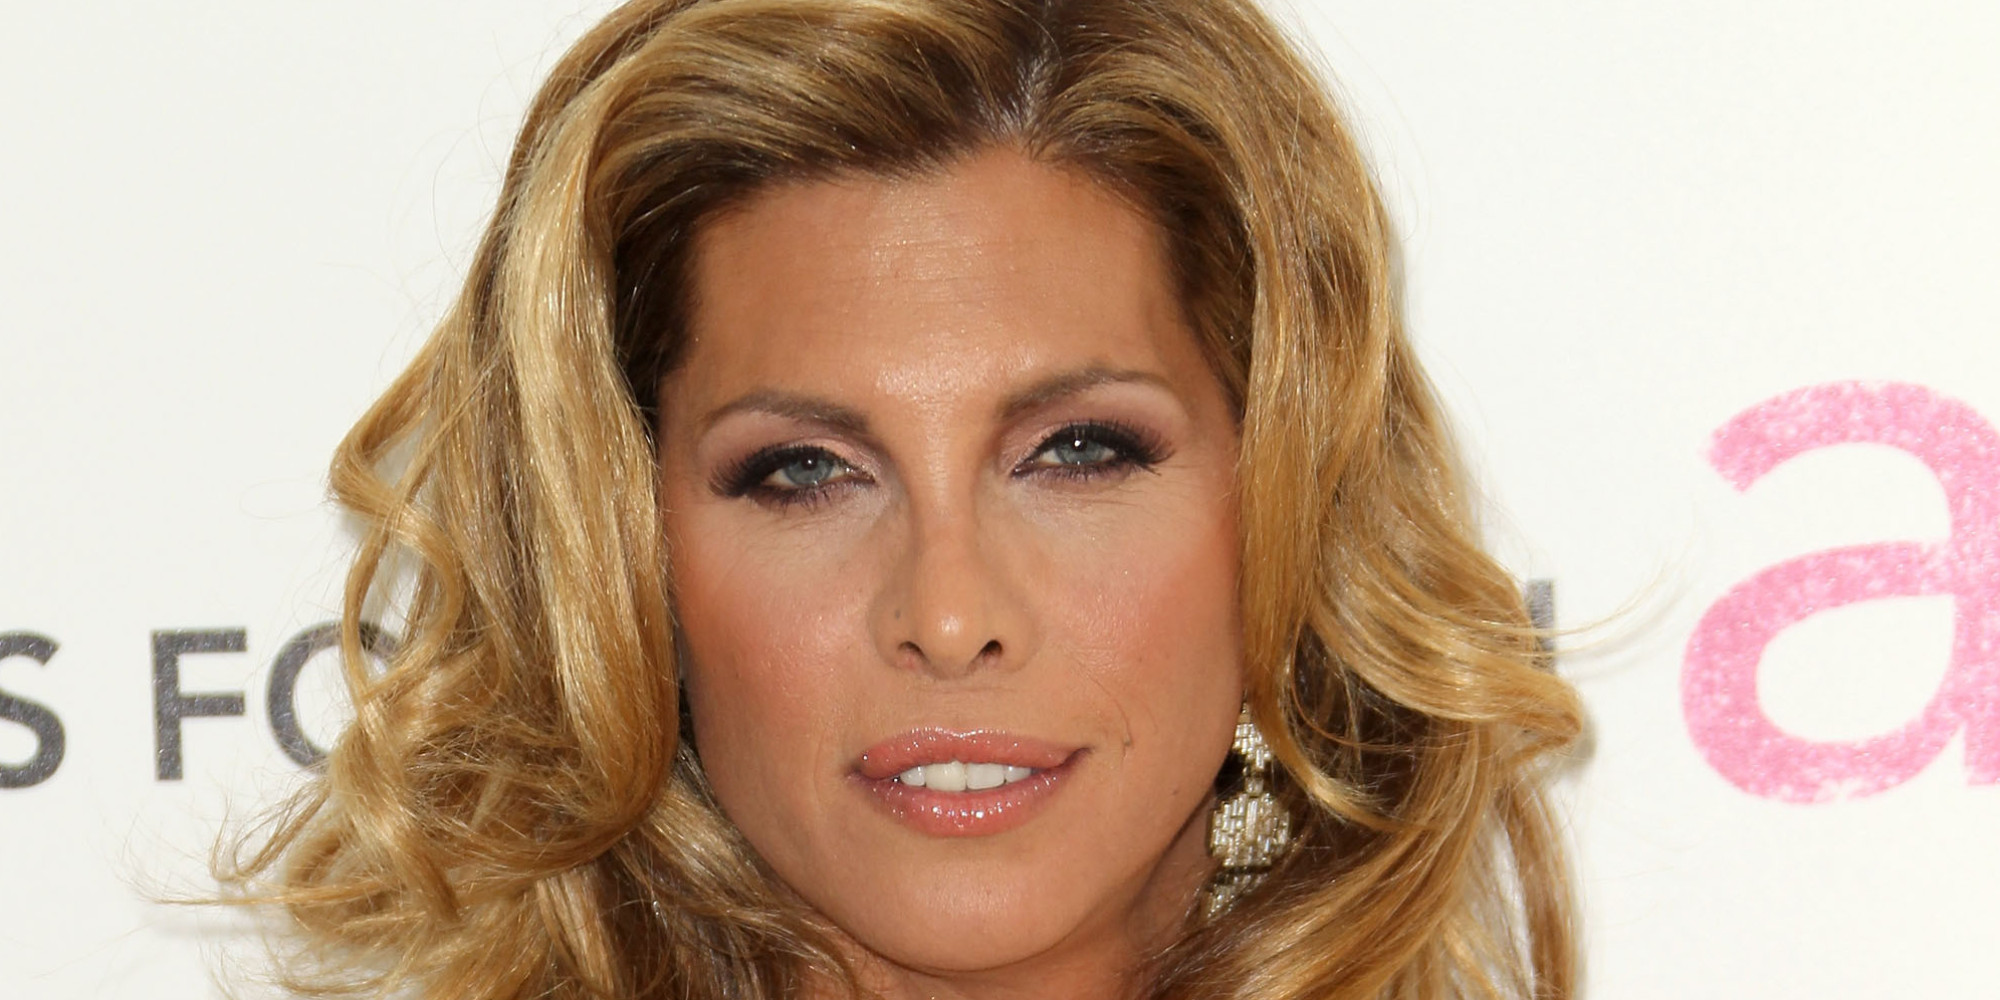 from Isaac candis cayne tranny